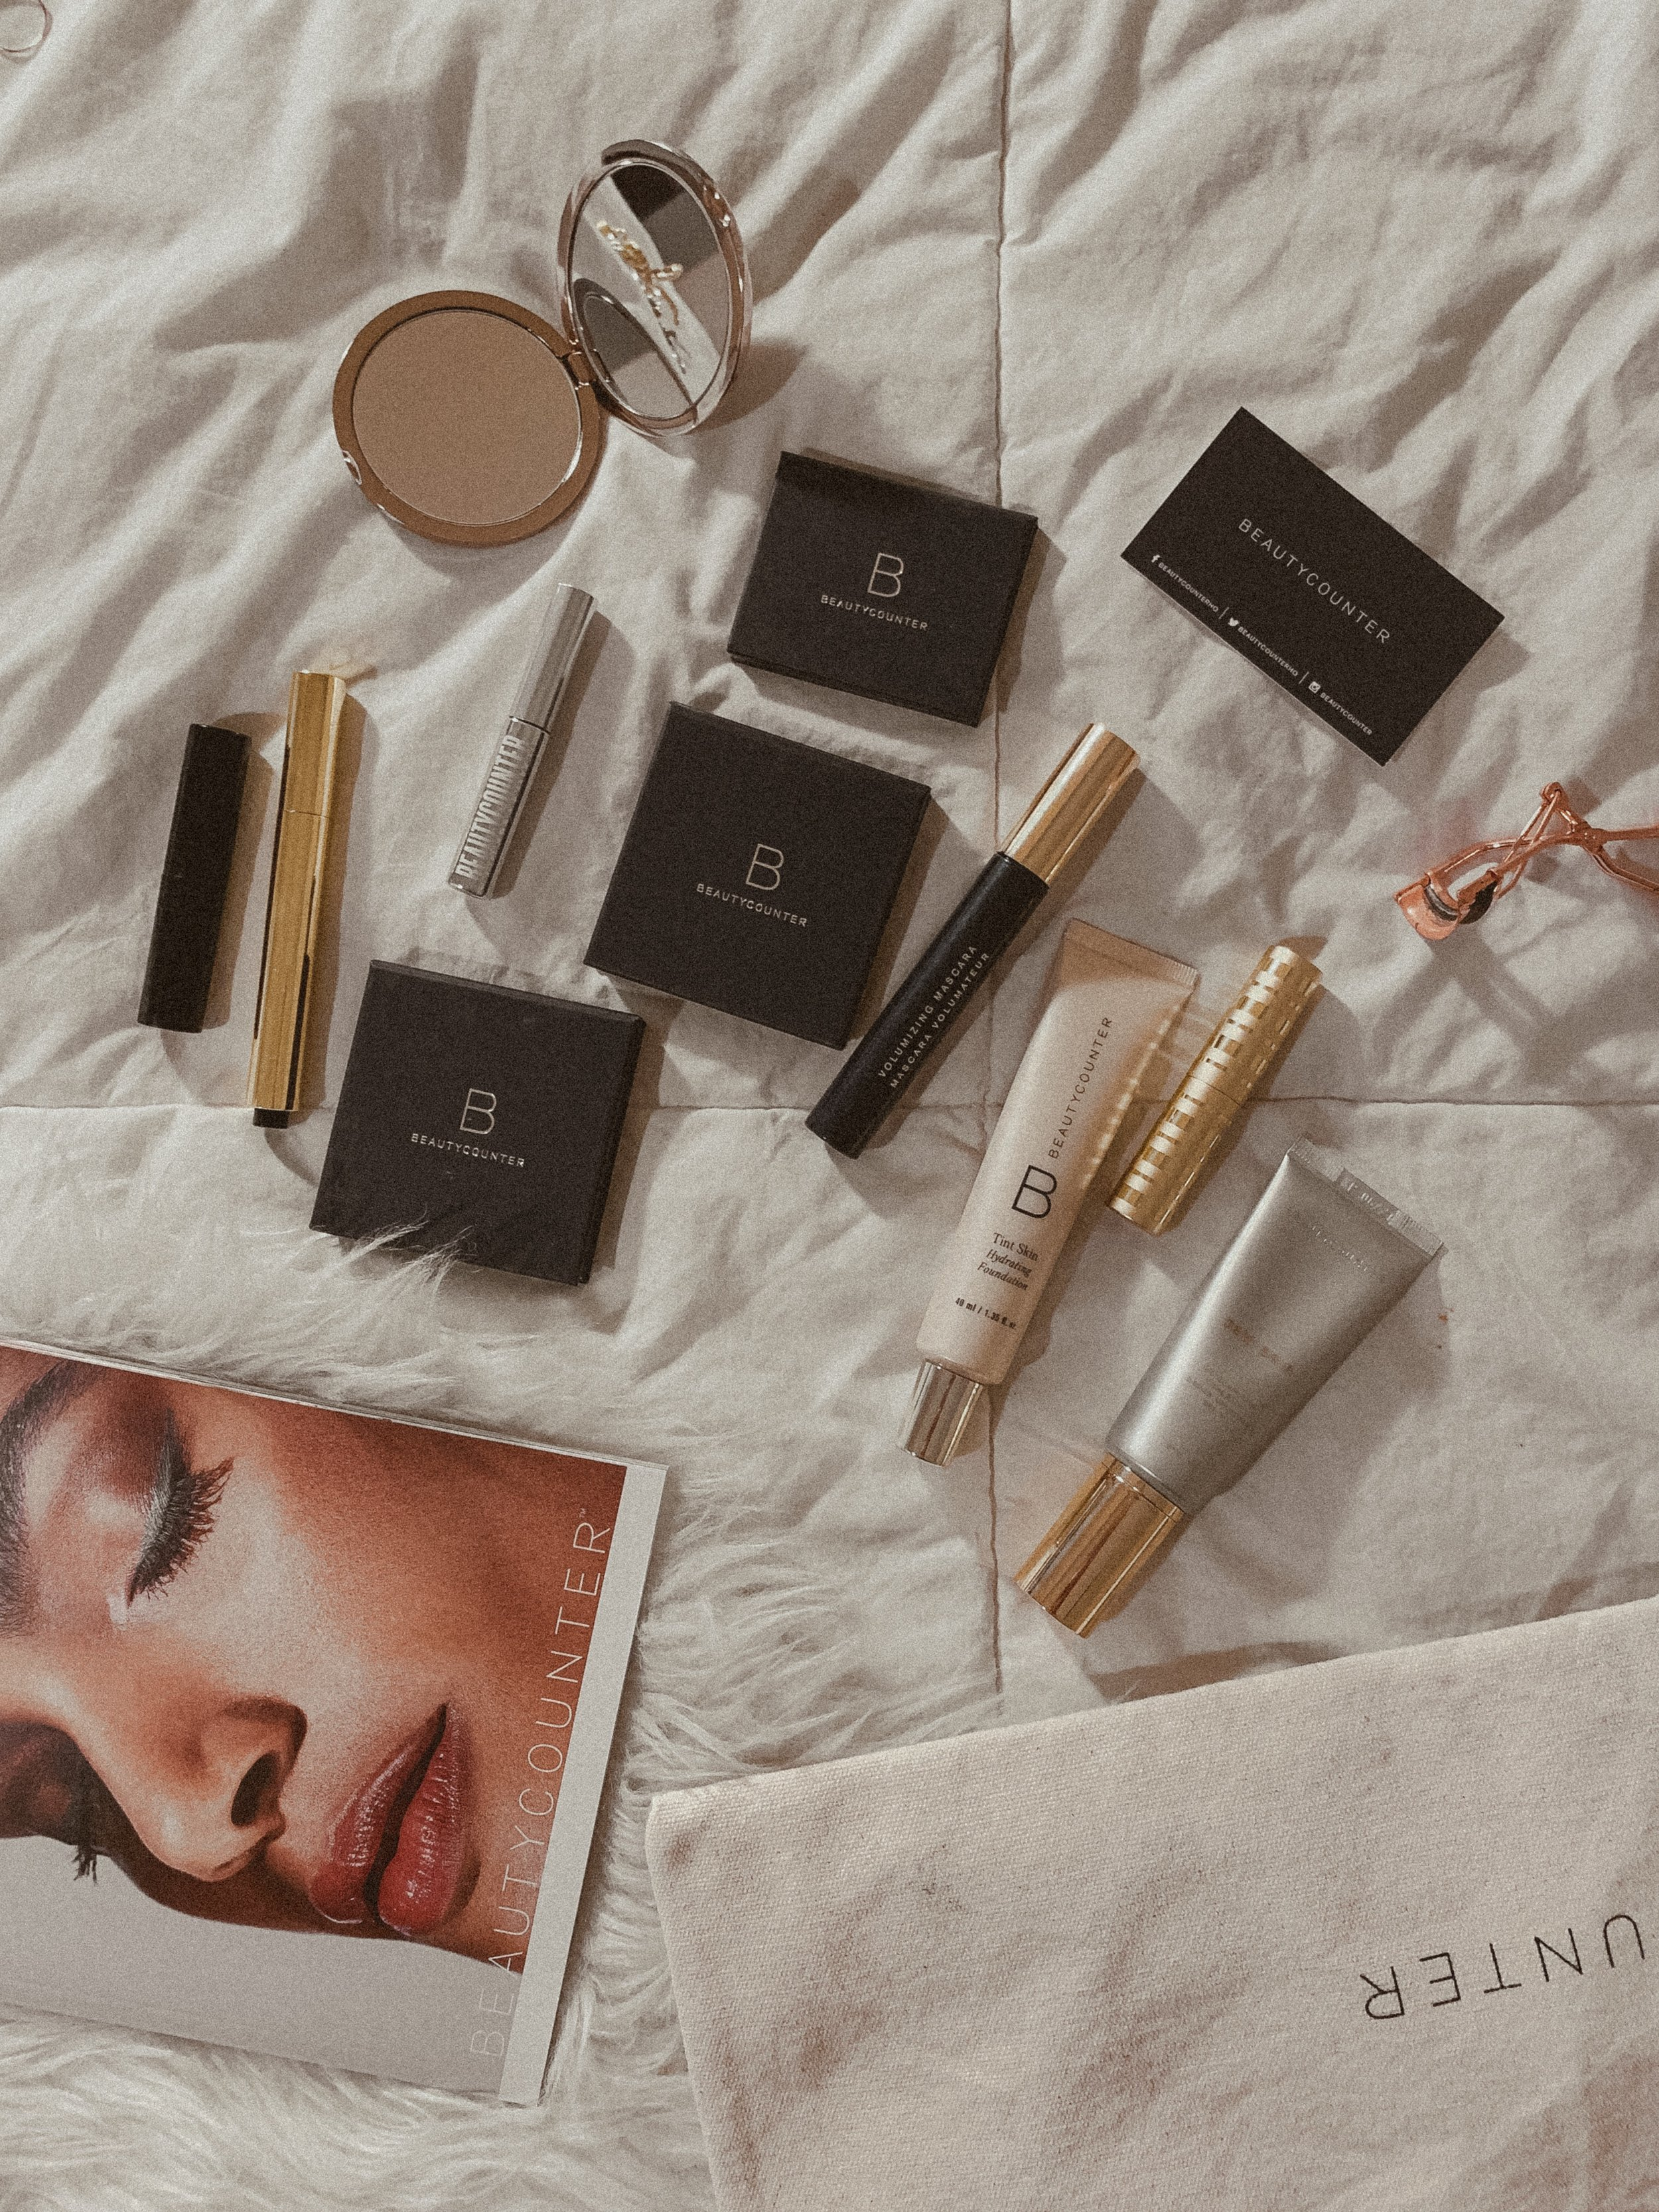 Clean Makeup Products I am Loving Now - Beautycounter